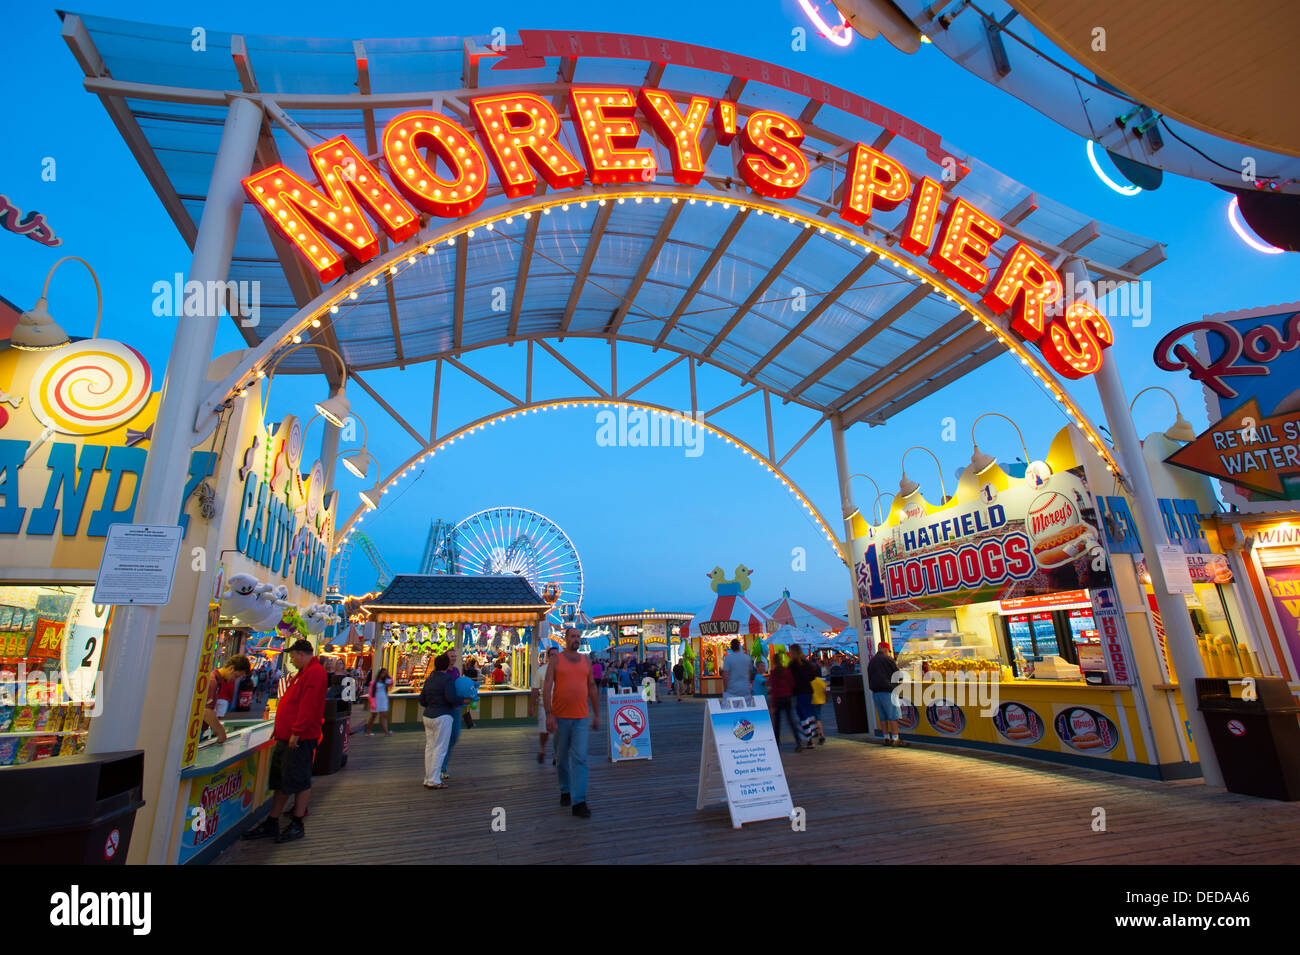 usa-new-jersey-nj-shore-wildwood-boardwalk-at-night-food-games-rides-DEDAA6.jpg